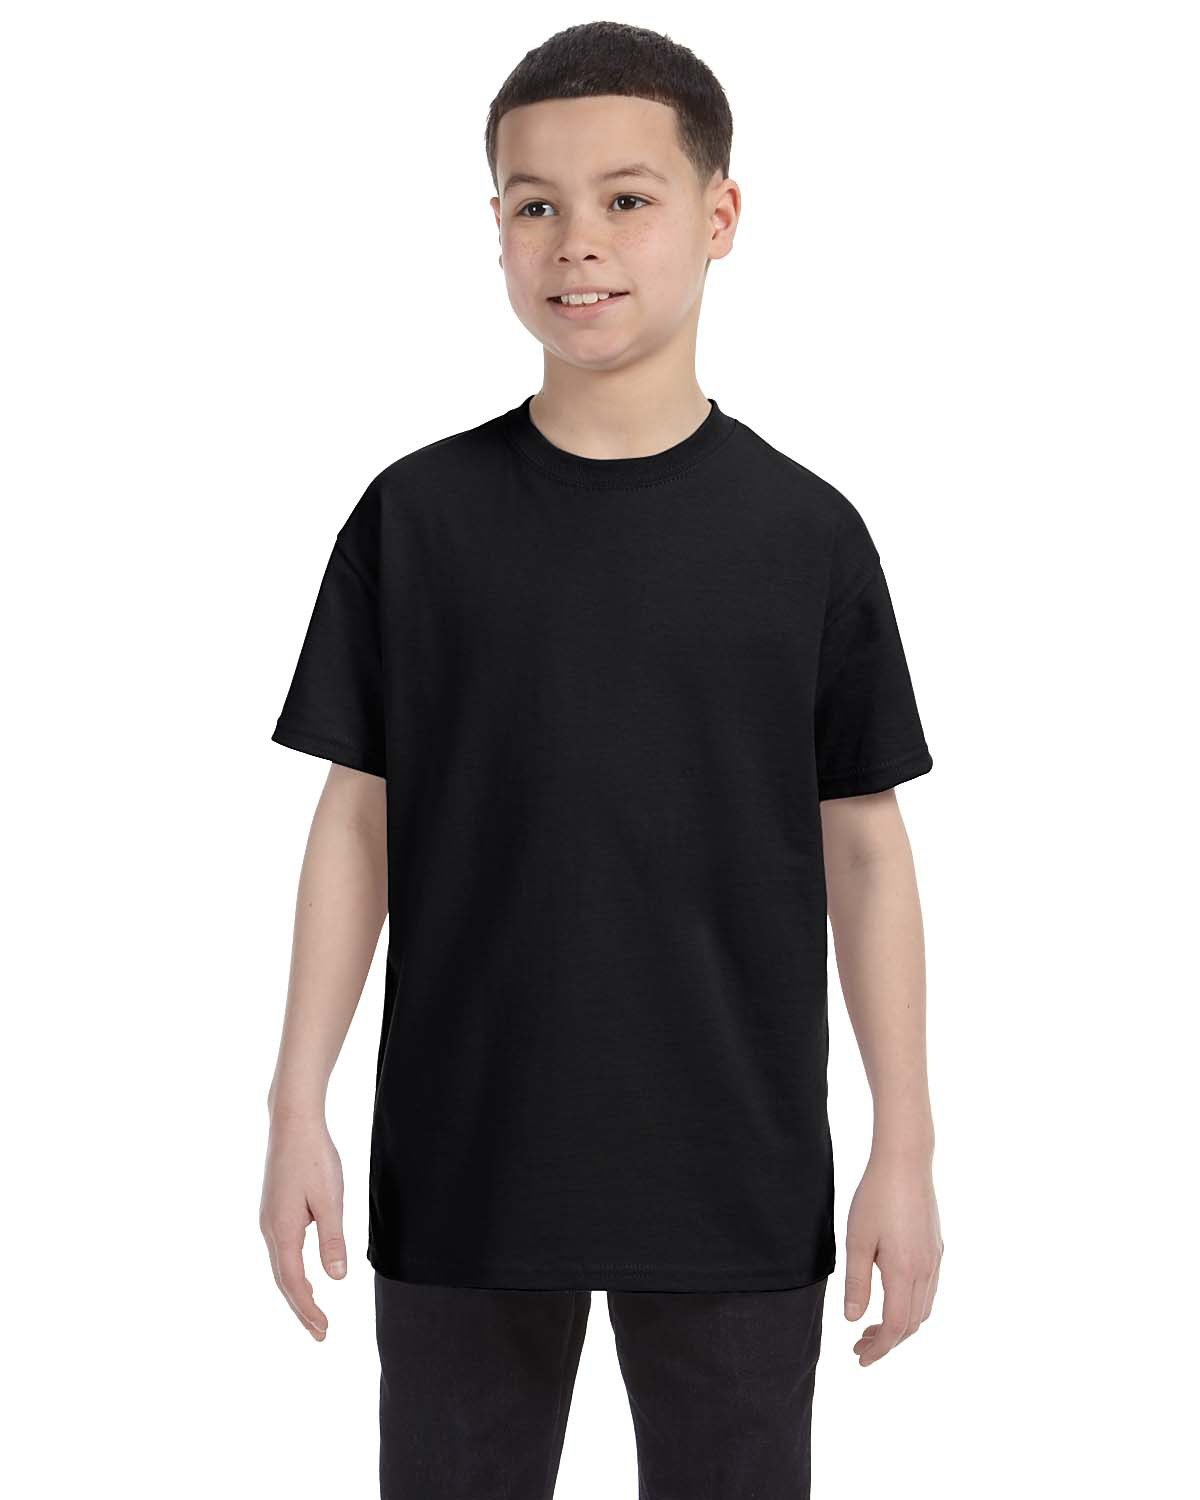 Hanes Youth Authentic-T T-Shirt BLACK